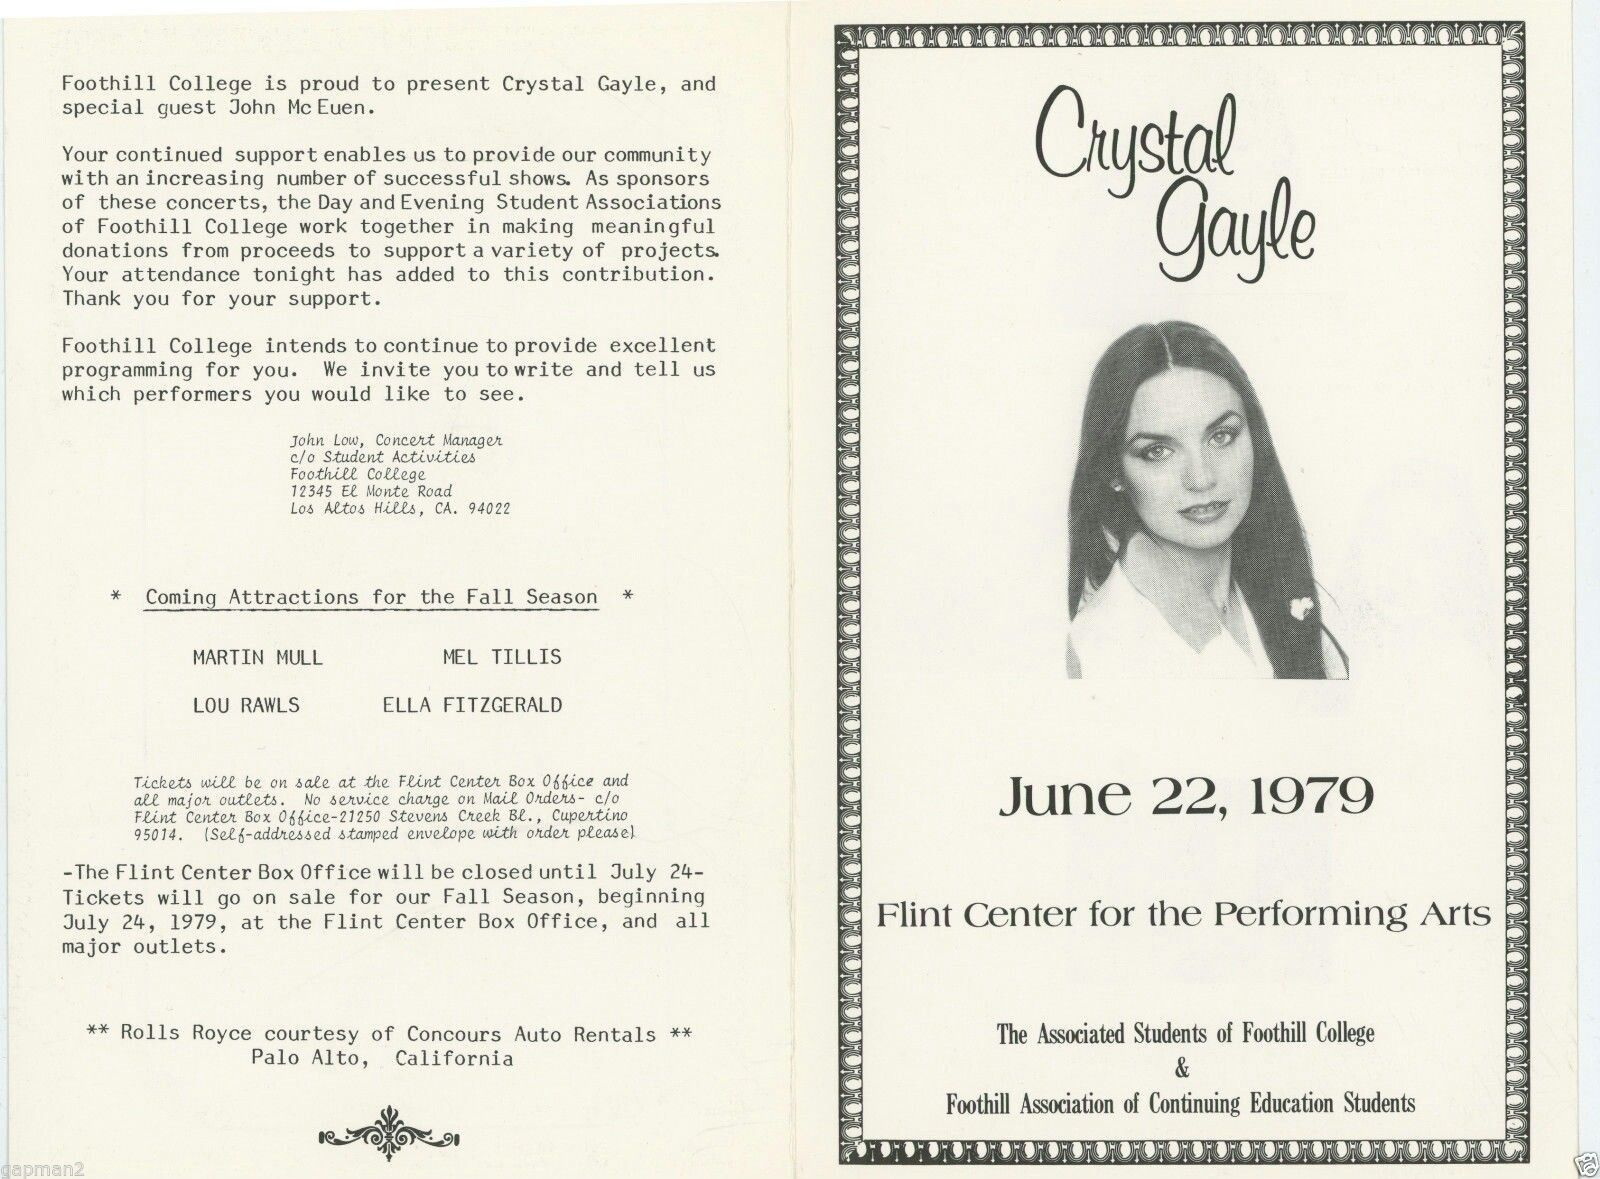 Crystal Gayle Concert Program   Programming Jessica